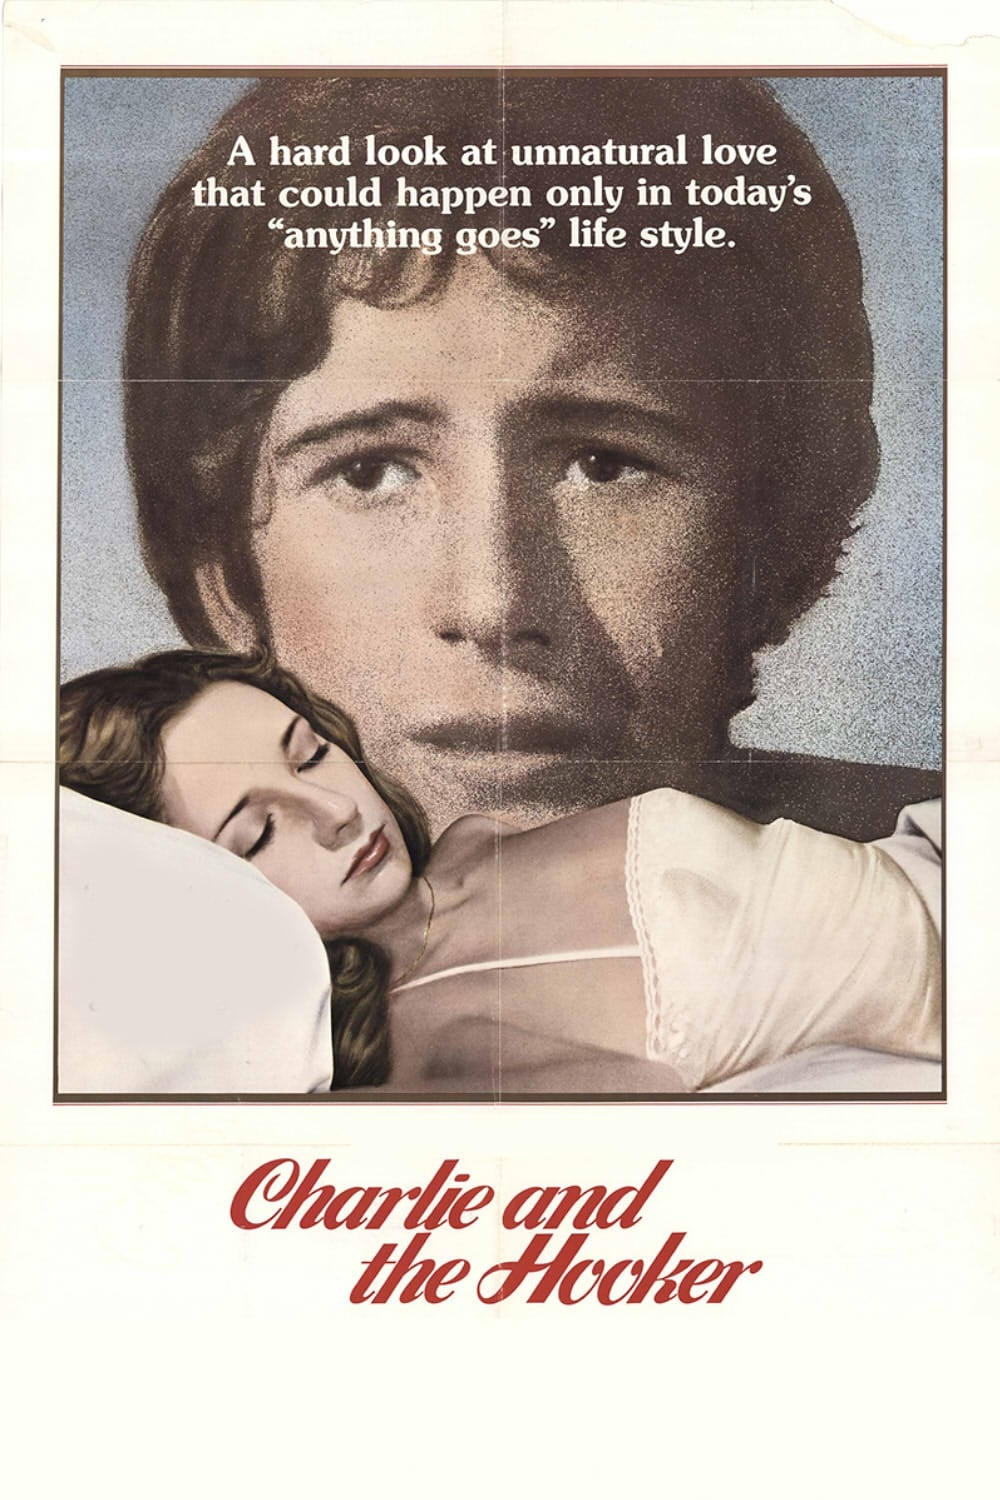 Charlie and the Hooker (1979)